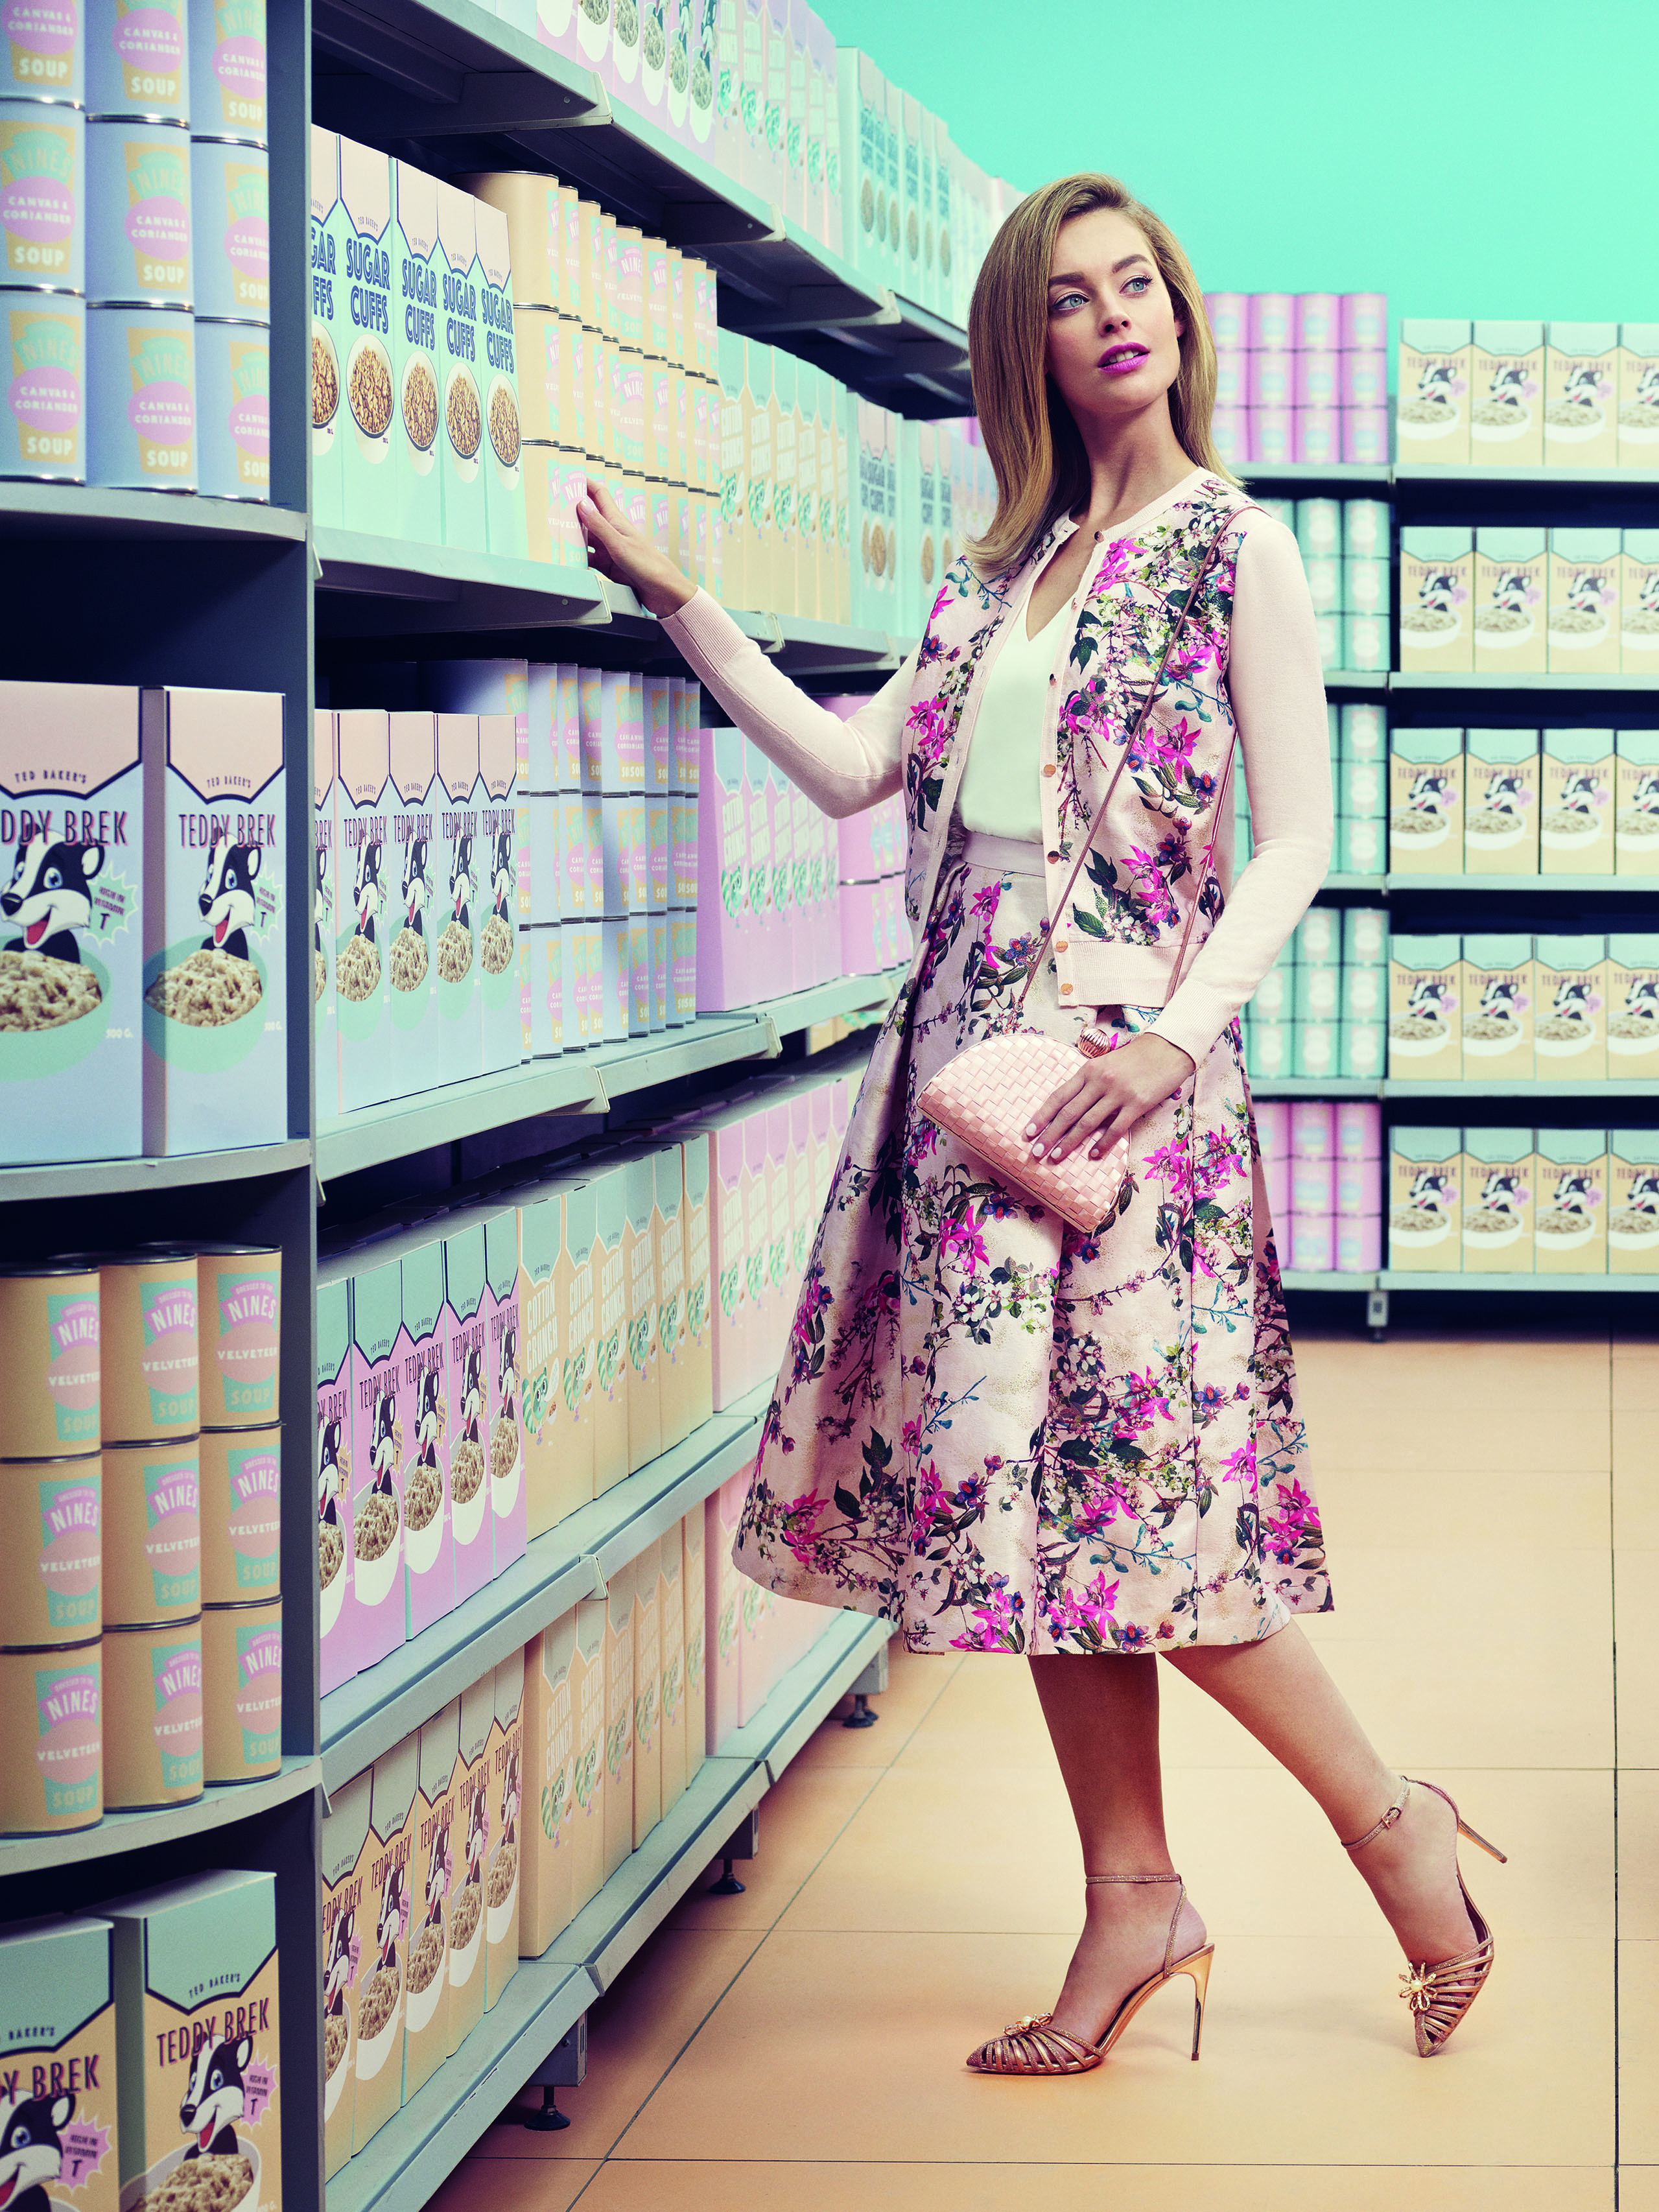 Ted Baker SS 2017 Ad Campaign 3